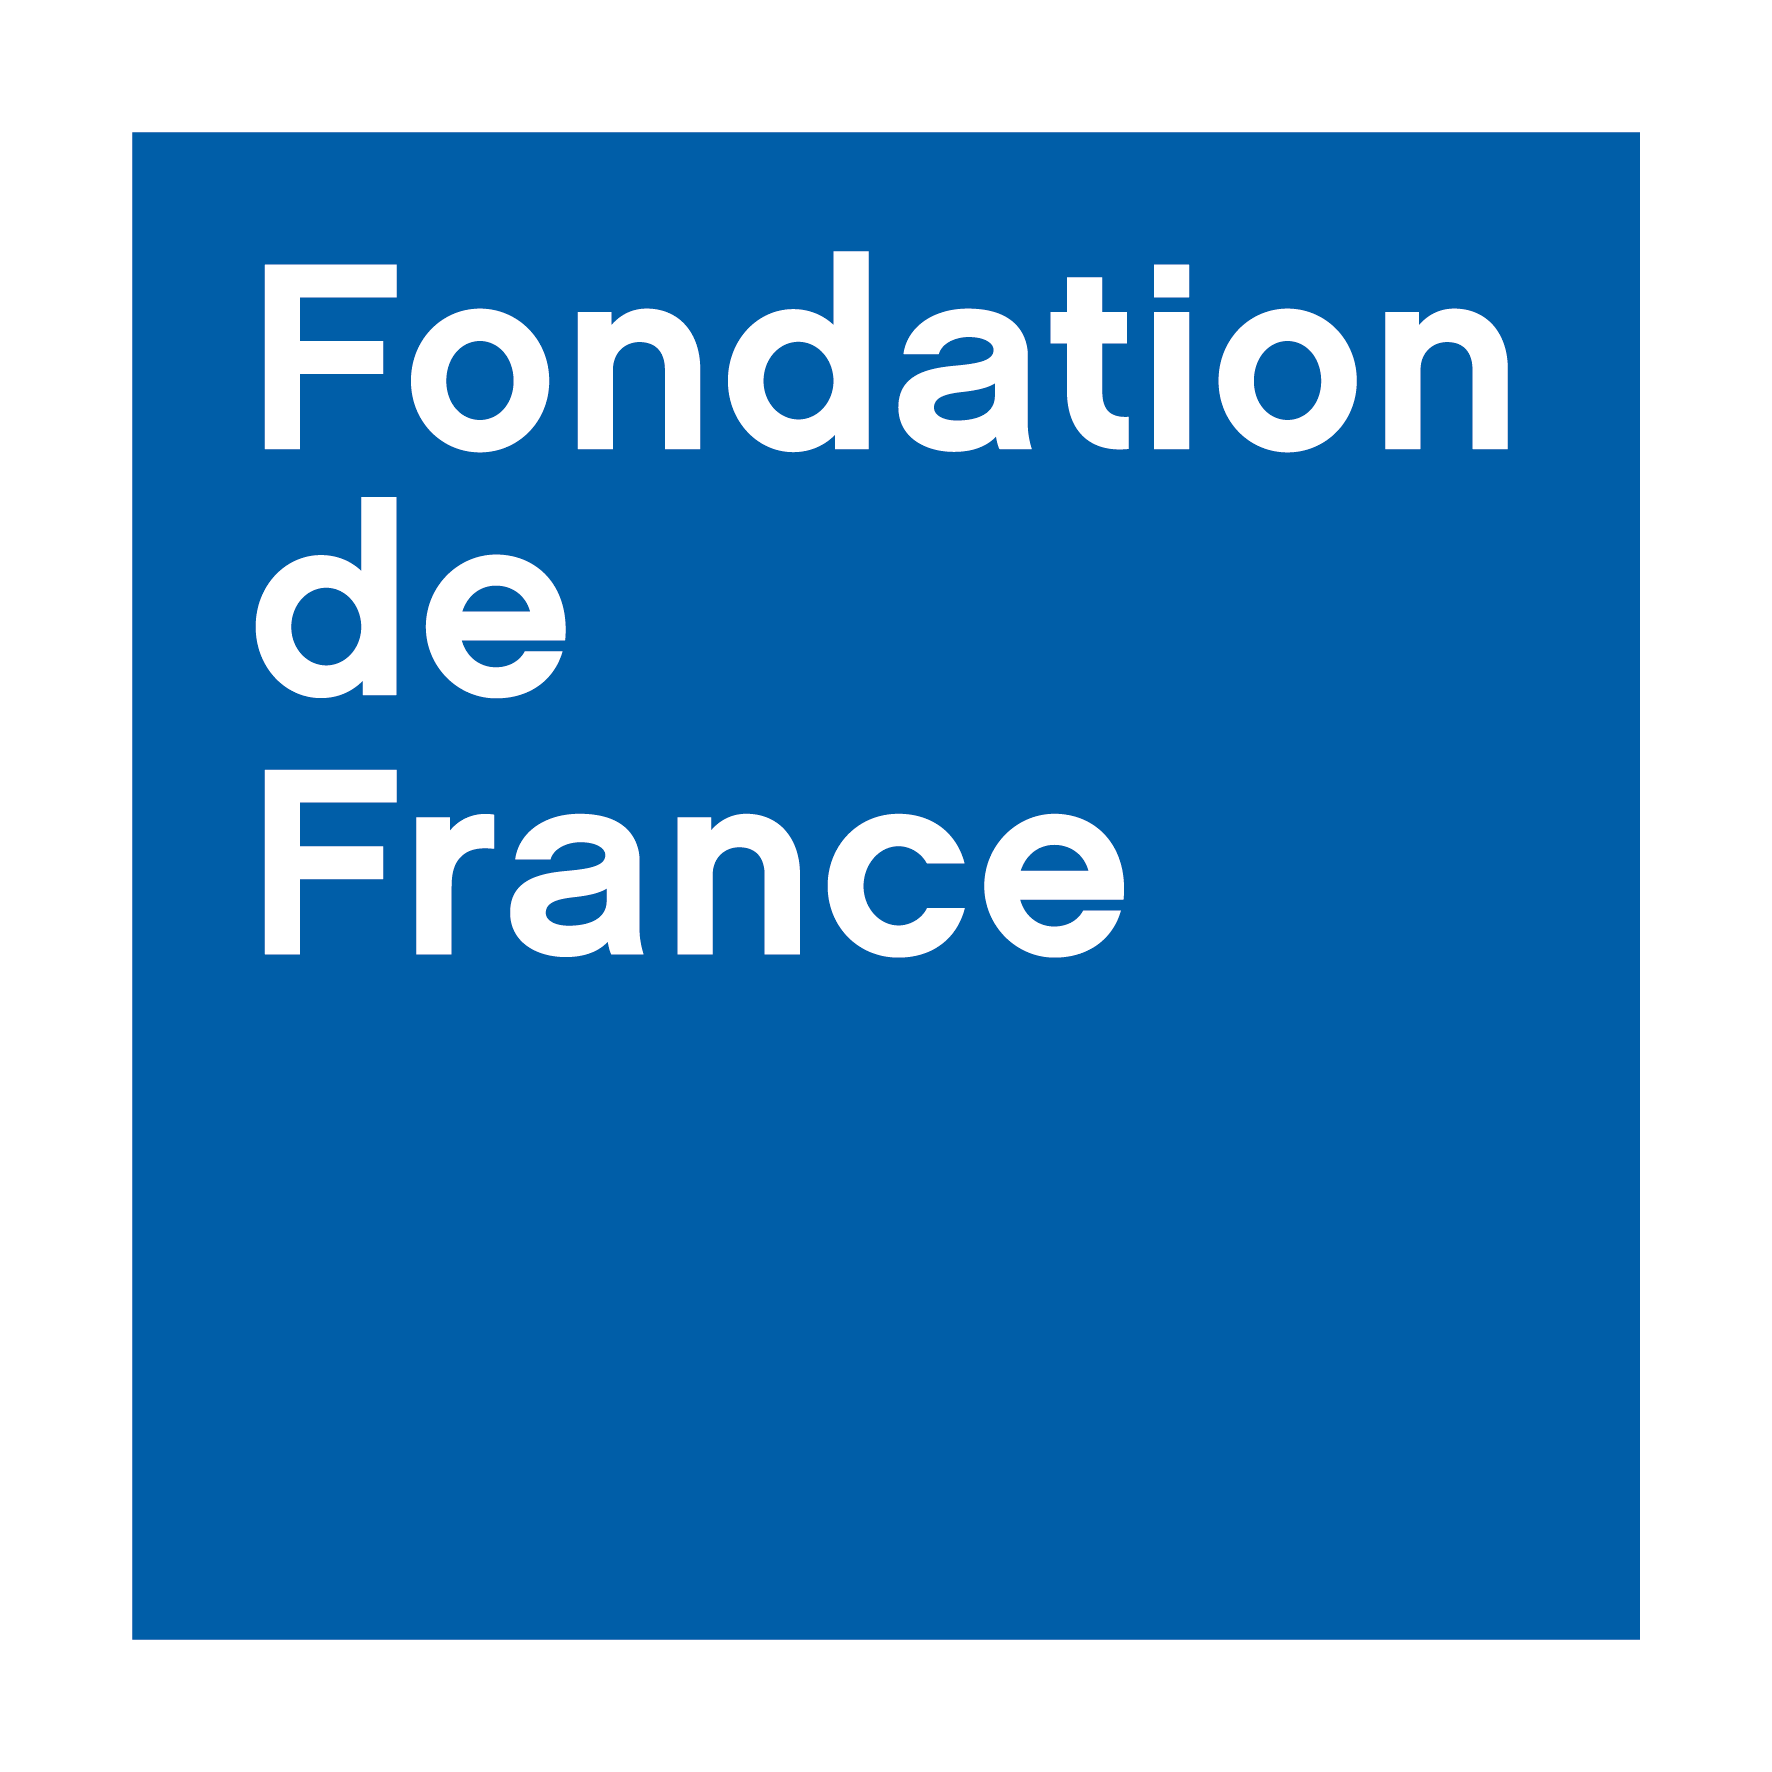 the Fondation de France logo